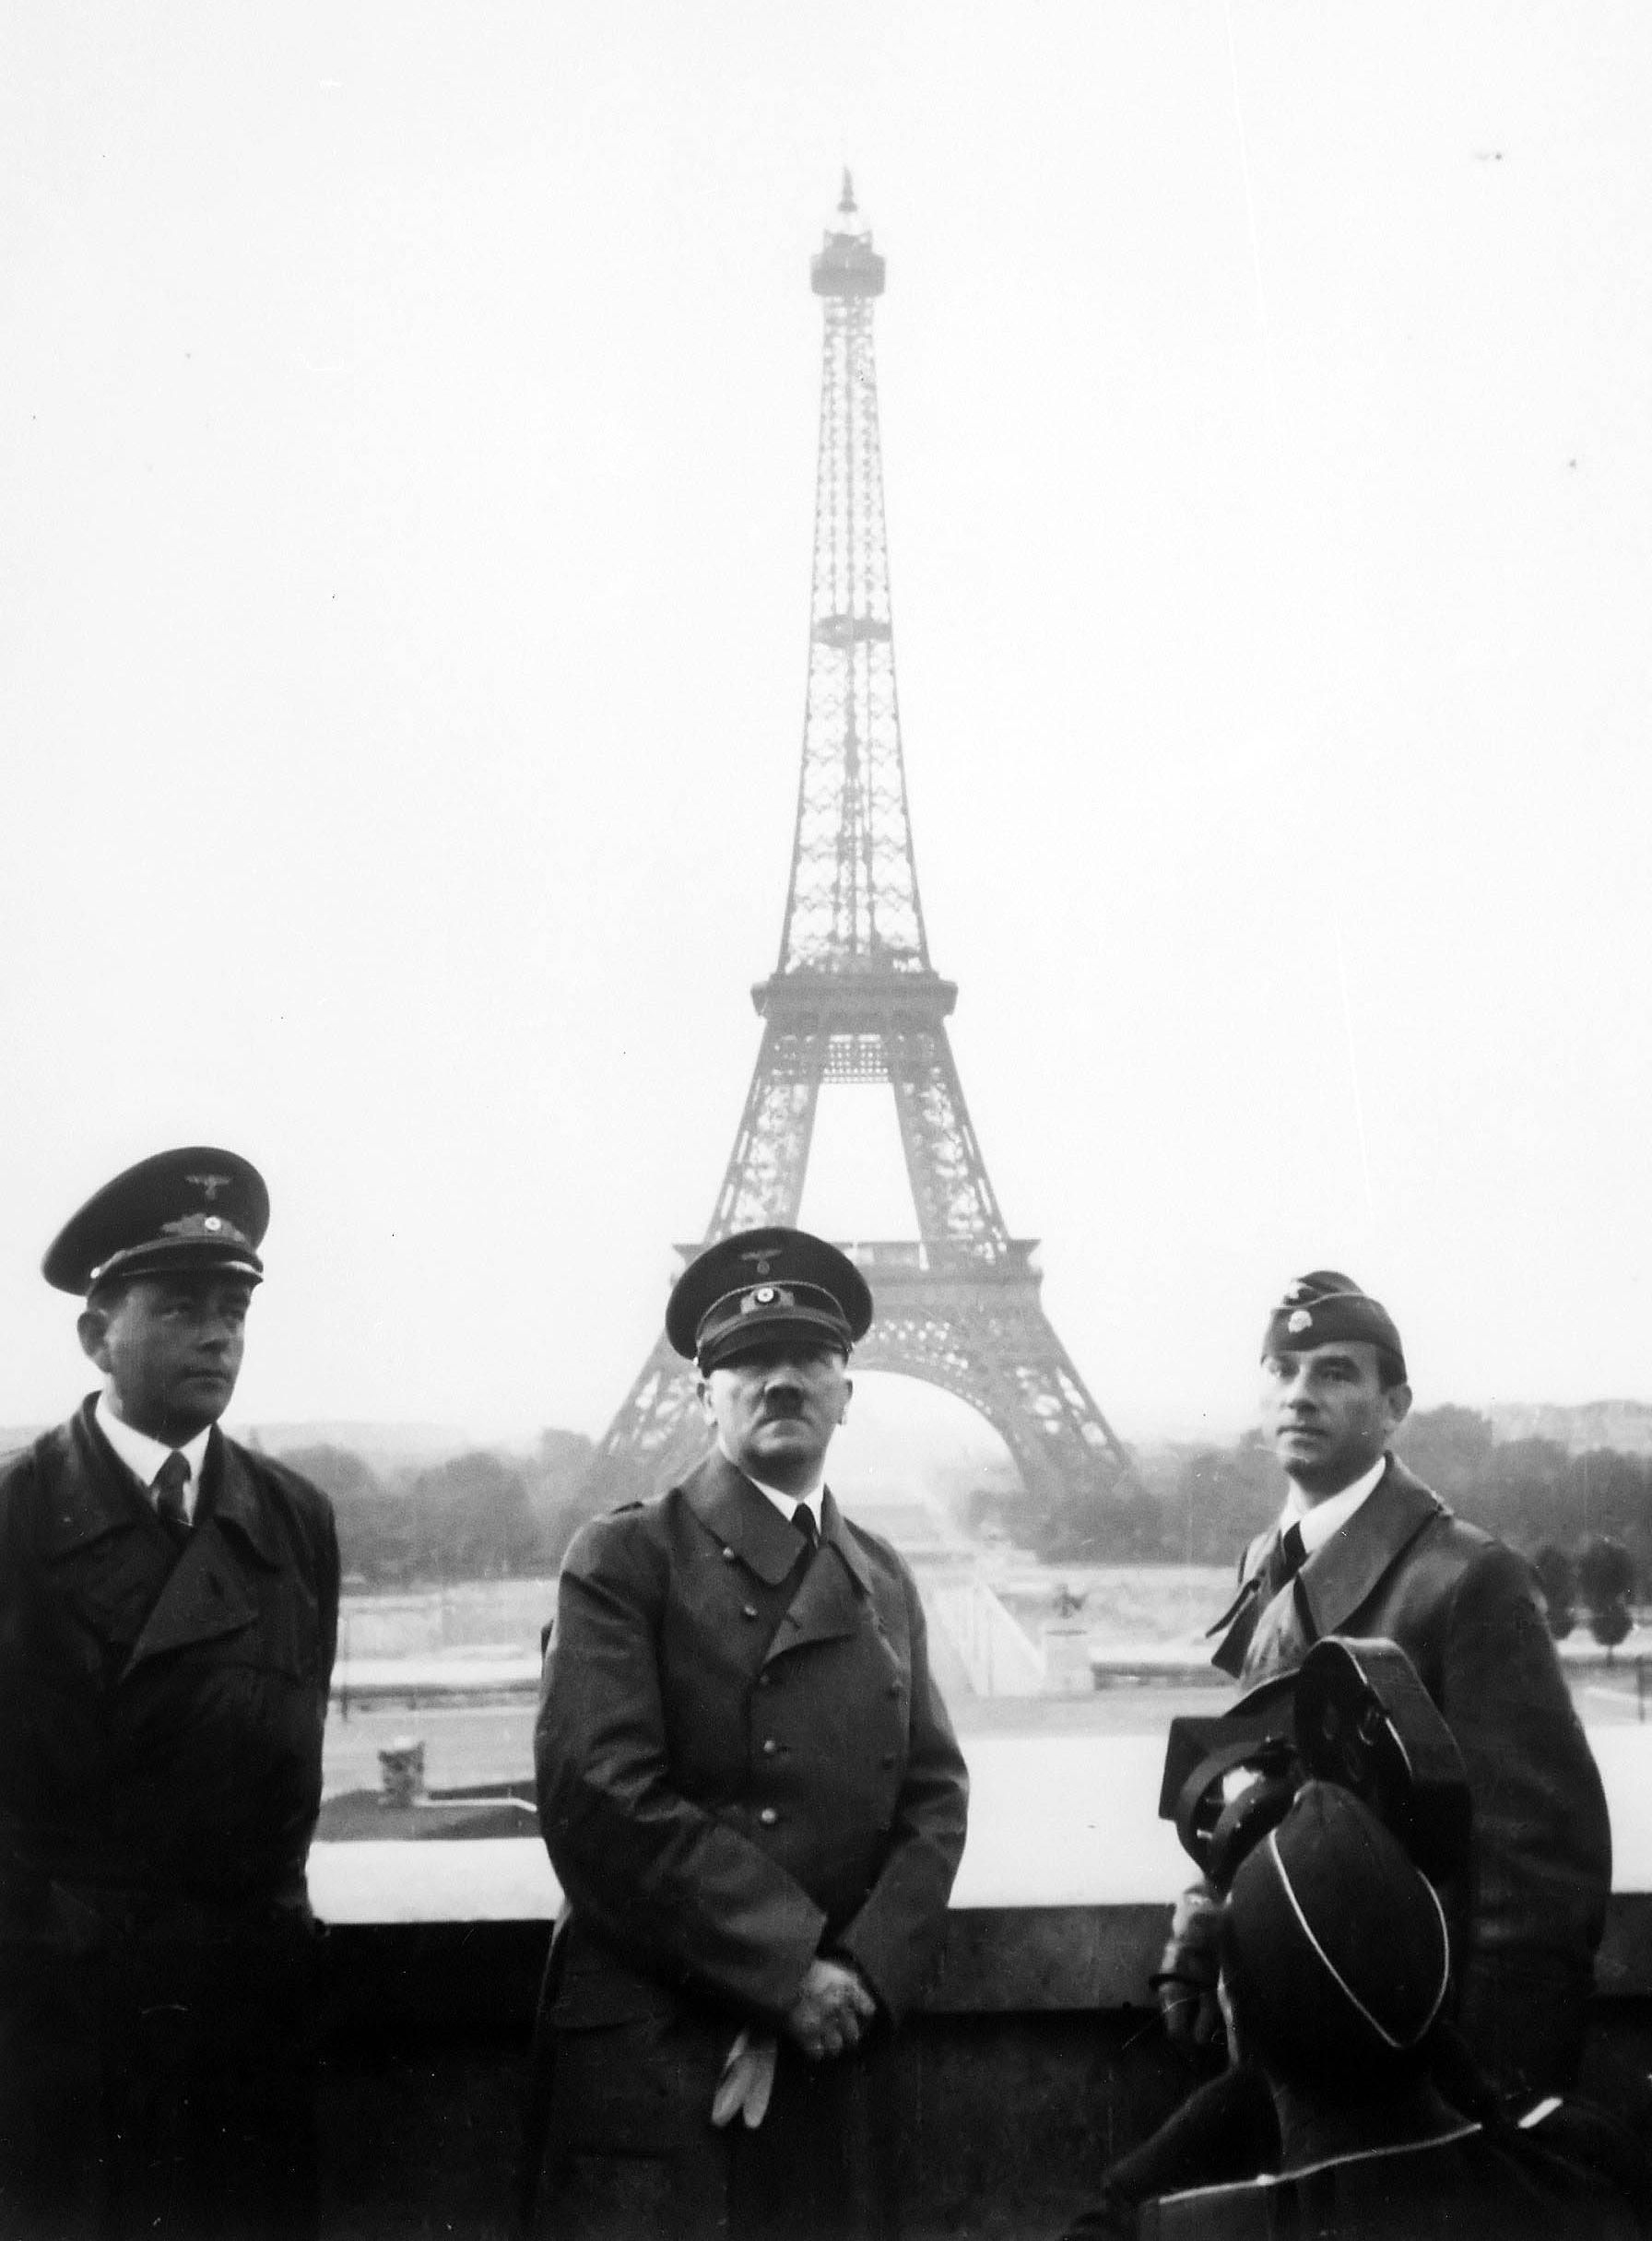 Hitler And His Good Friend Albert (Left) Visiting The Famous